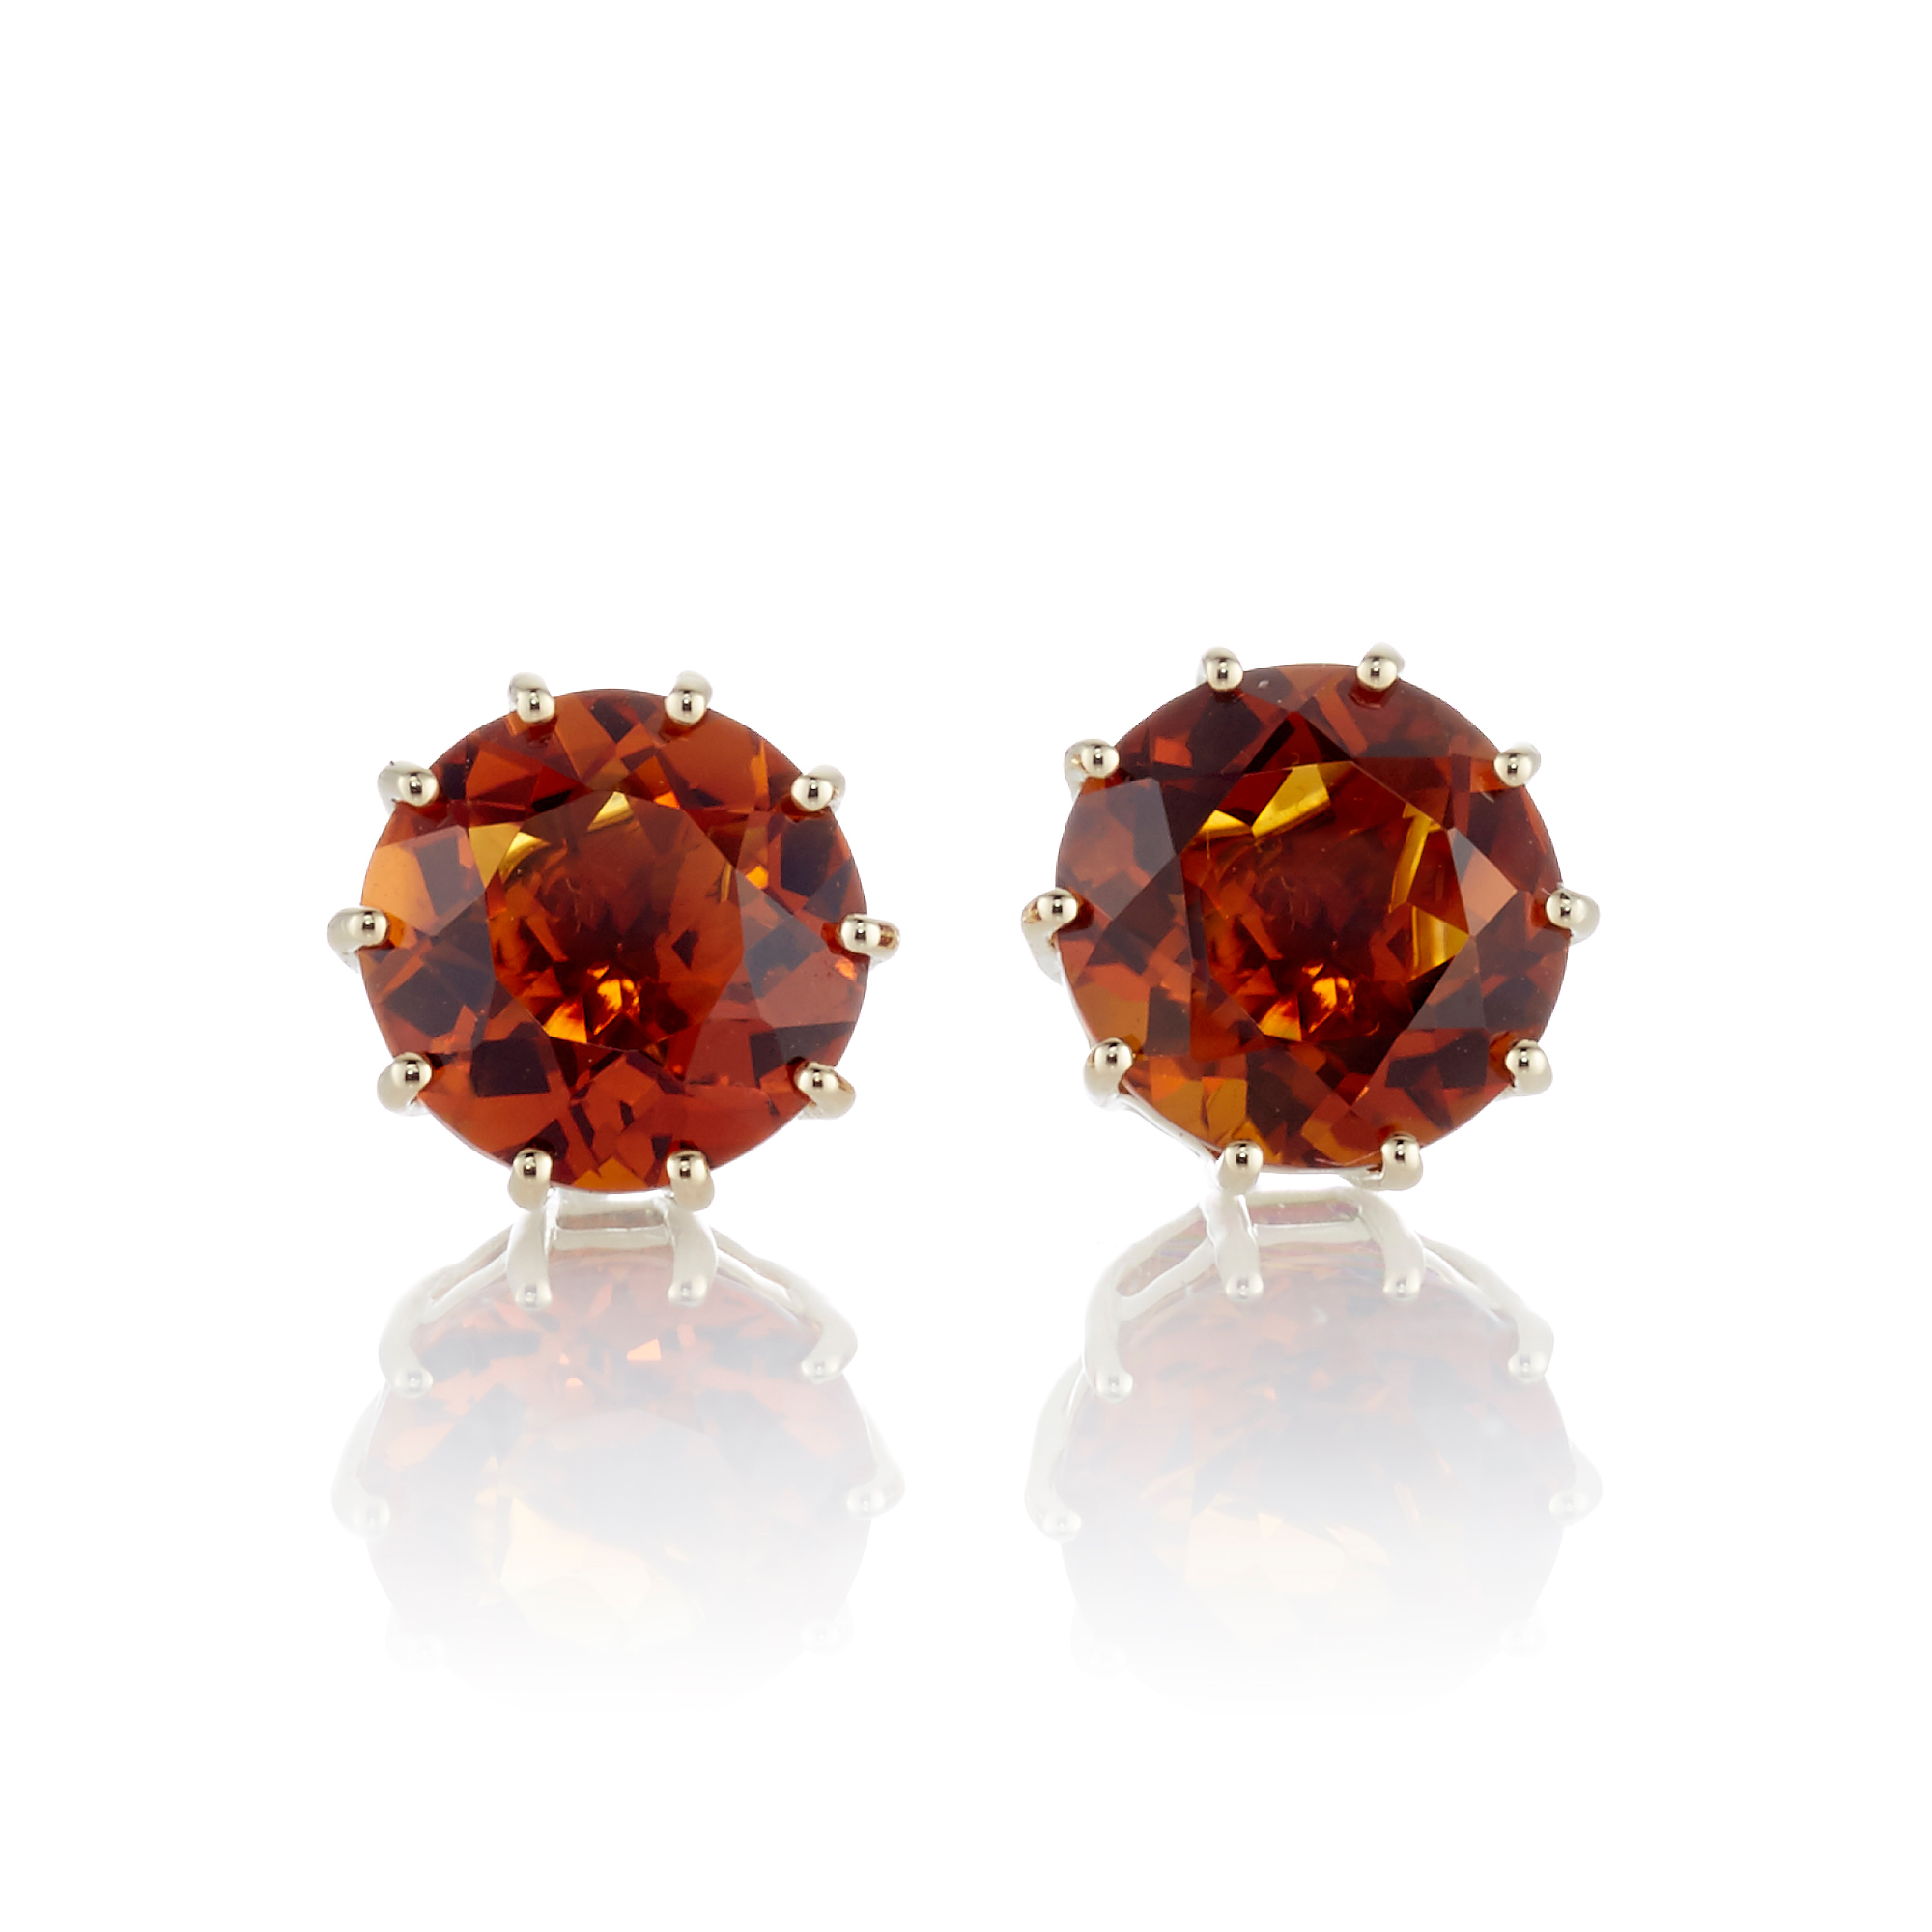 Gump's Faceted Madeira Citrine Earrings